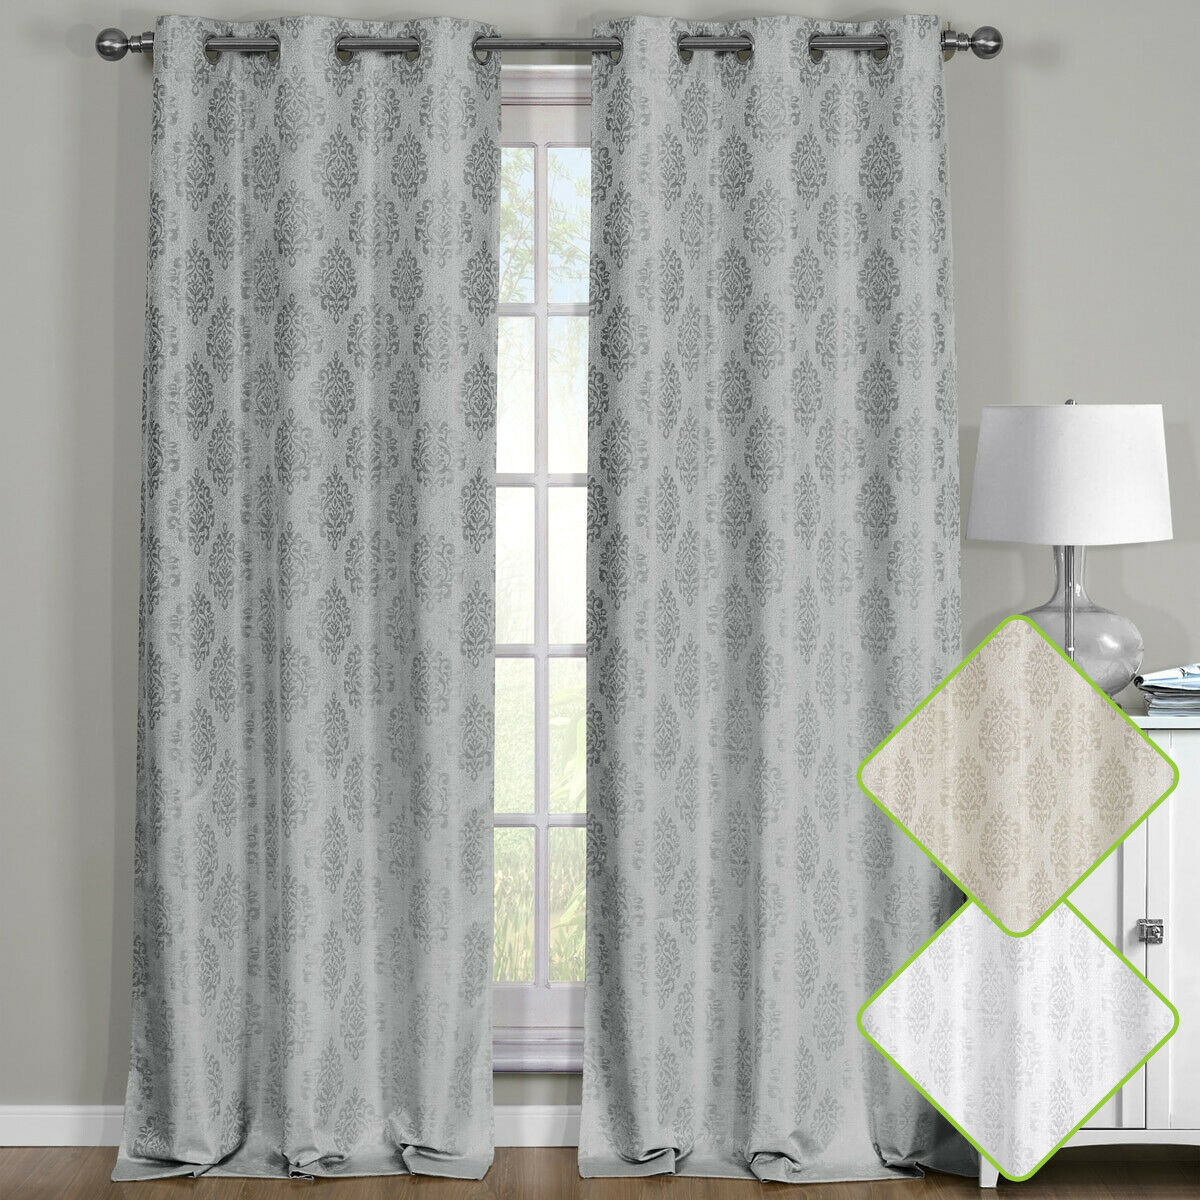 Paisley Thermal Blackout Curtain Panels Grommet Top Window Jacquard Curtain Pair Intended For True Blackout Vintage Textured Faux Silk Curtain Panels (View 23 of 30)